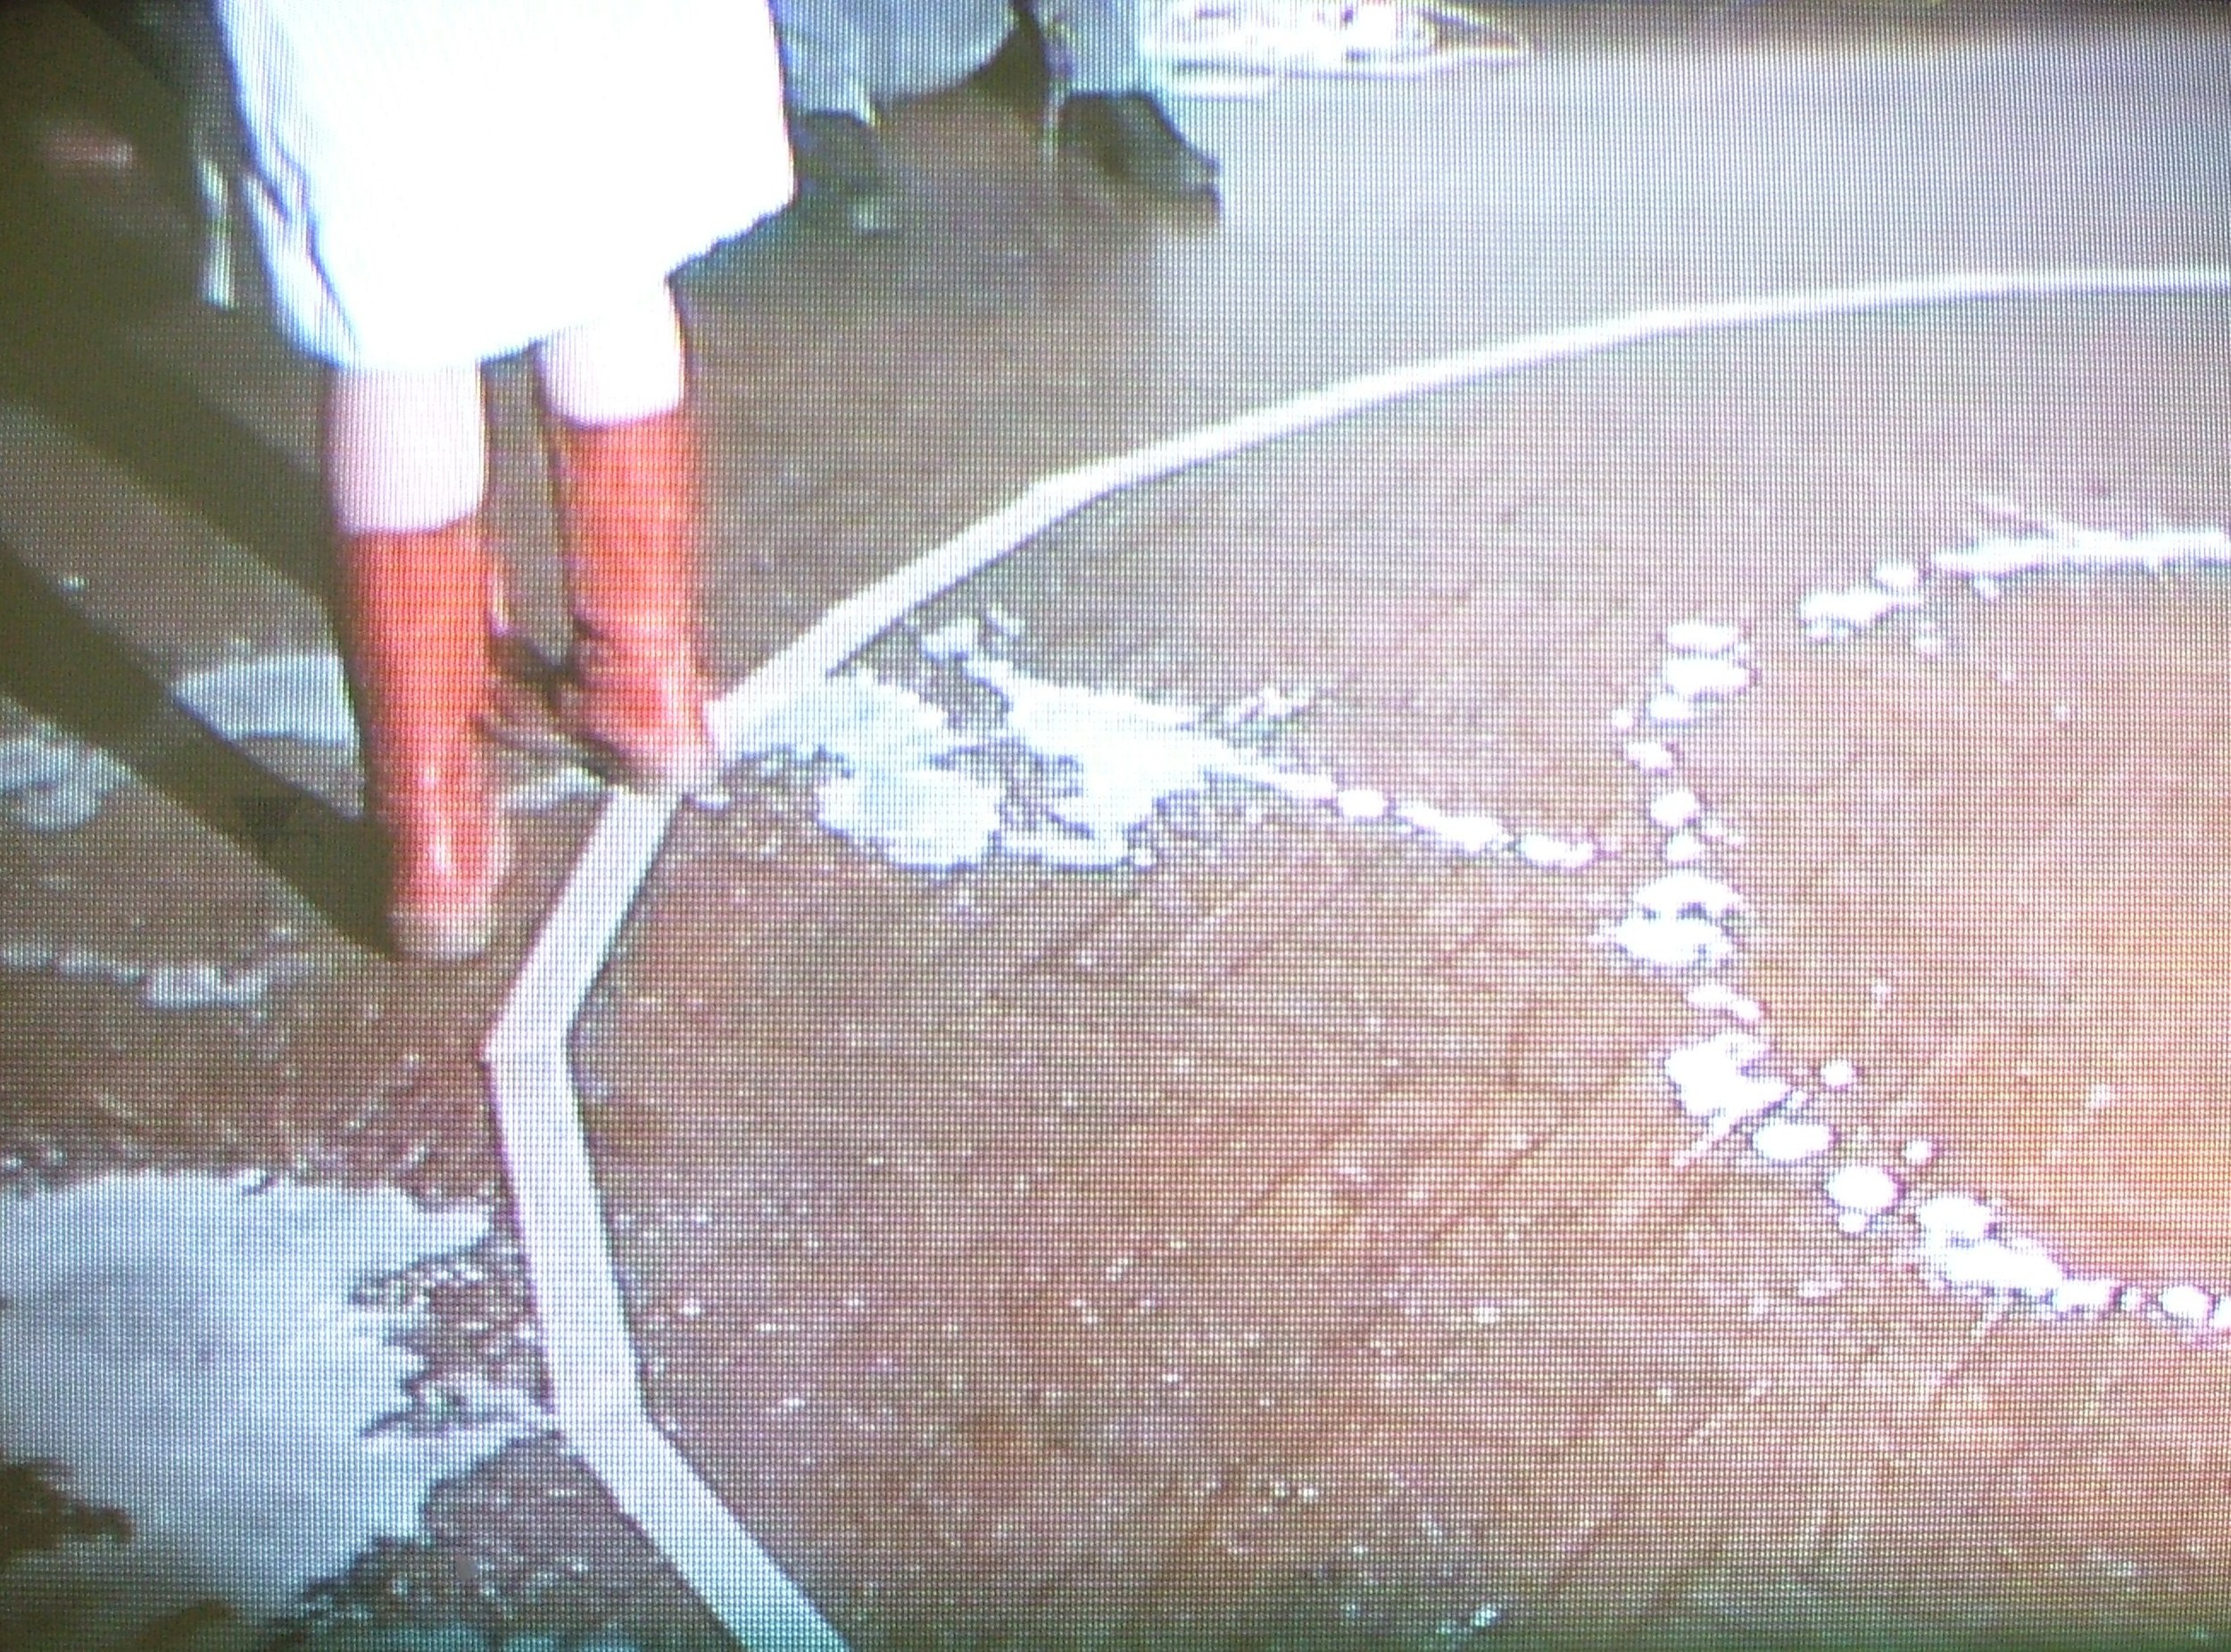 Kate Brown, Milk, performance, 2009